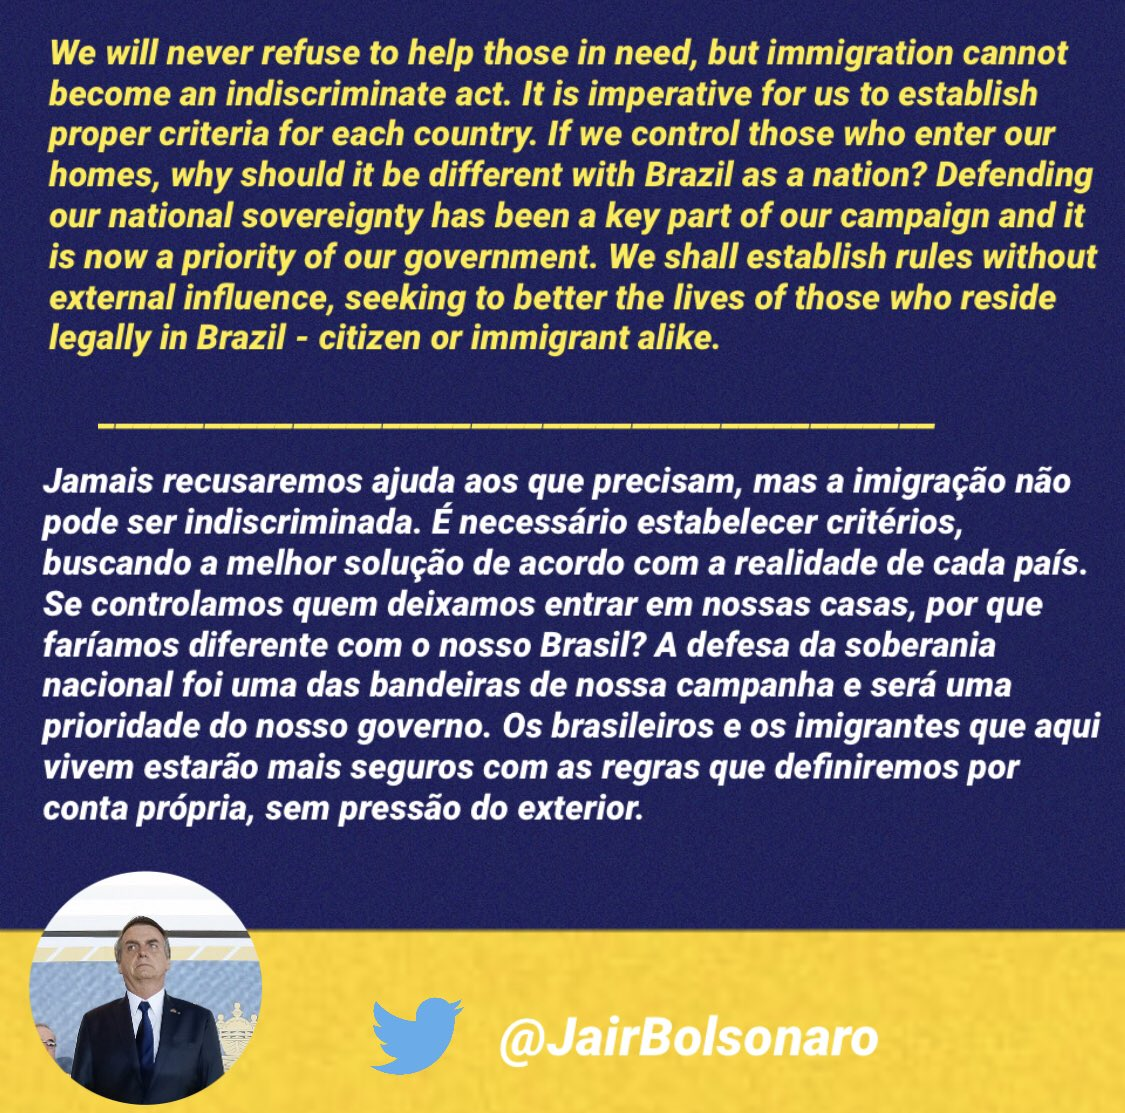 Bolsonaro threatens to withdraw Brazil from UN migration pact